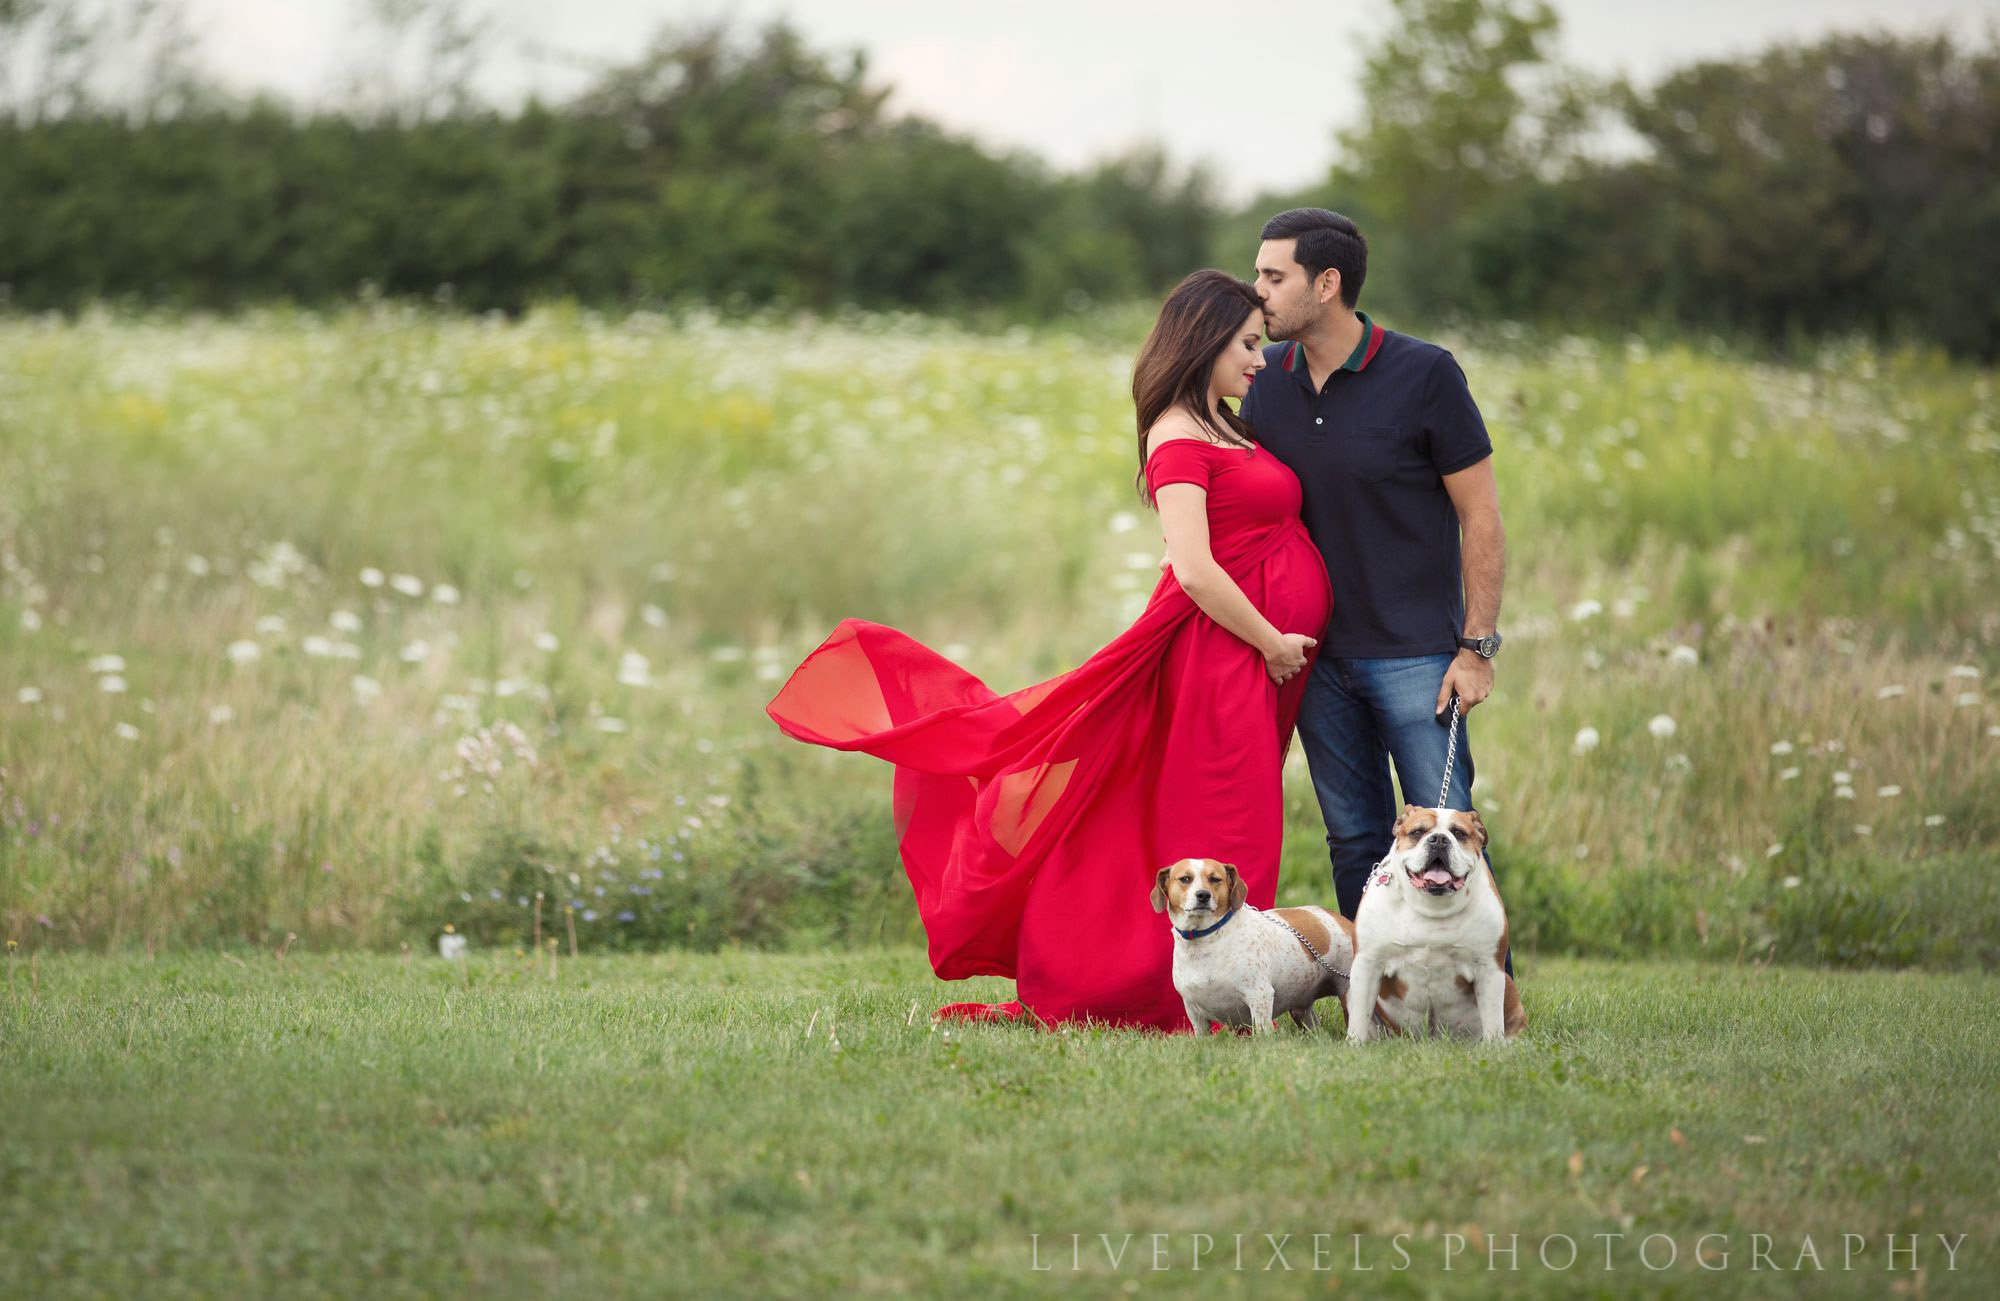 Maternity Portraits with couple and their dogs - Livepixels Photography, Toronto / livepixelsphotography.com